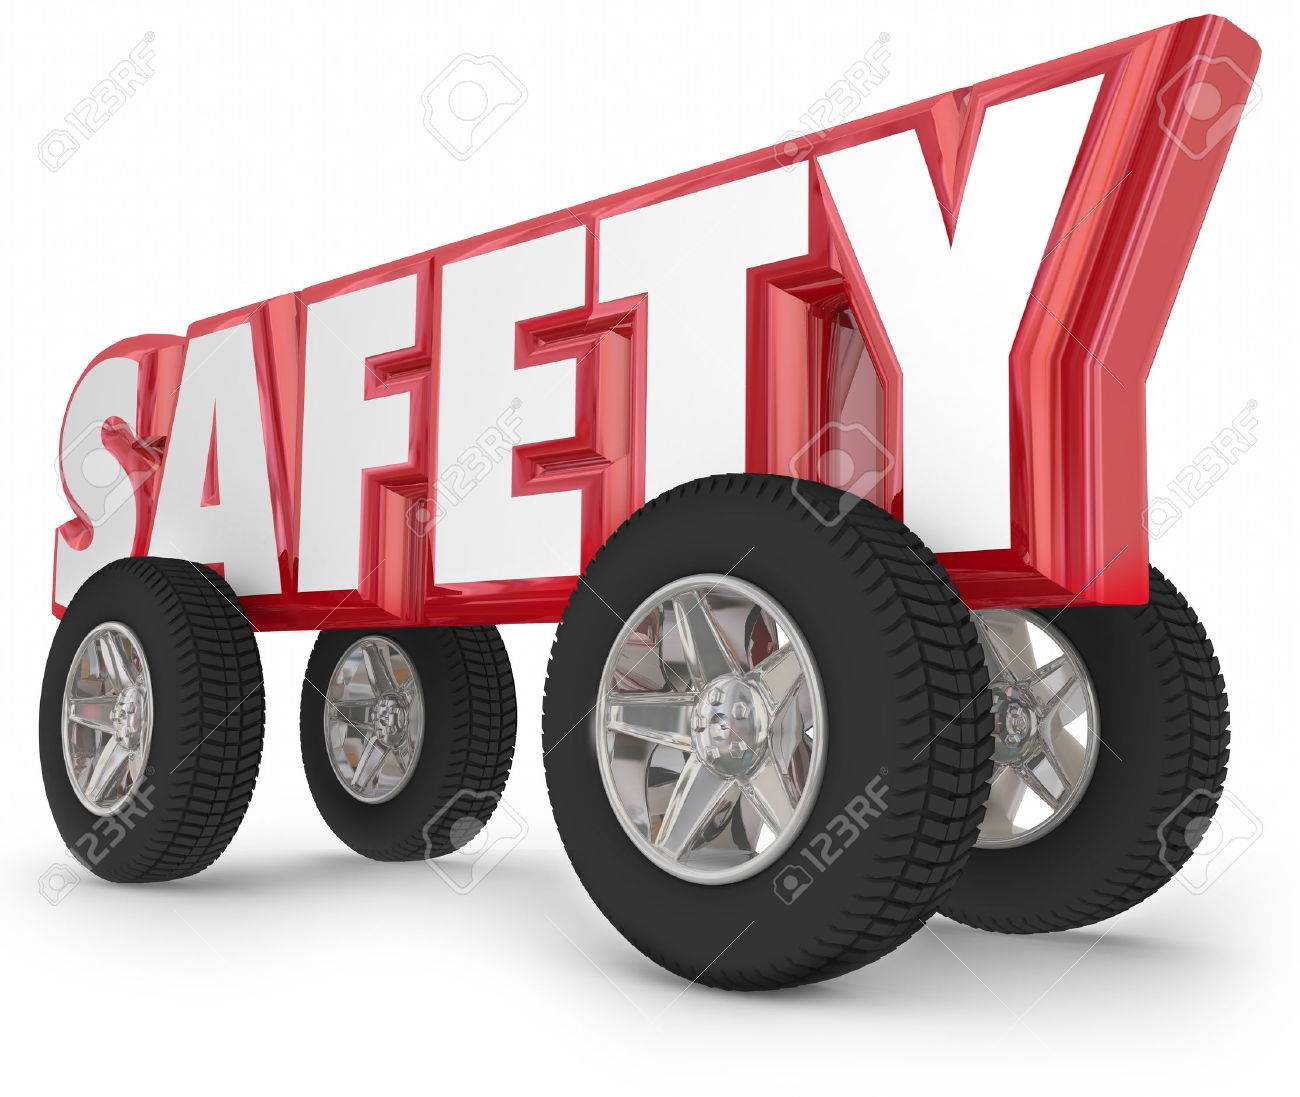 Car colour affects road safety - Road Safety Safety Driving Word With Wheels Or Tires To Illustrate Safe Traveling In Car